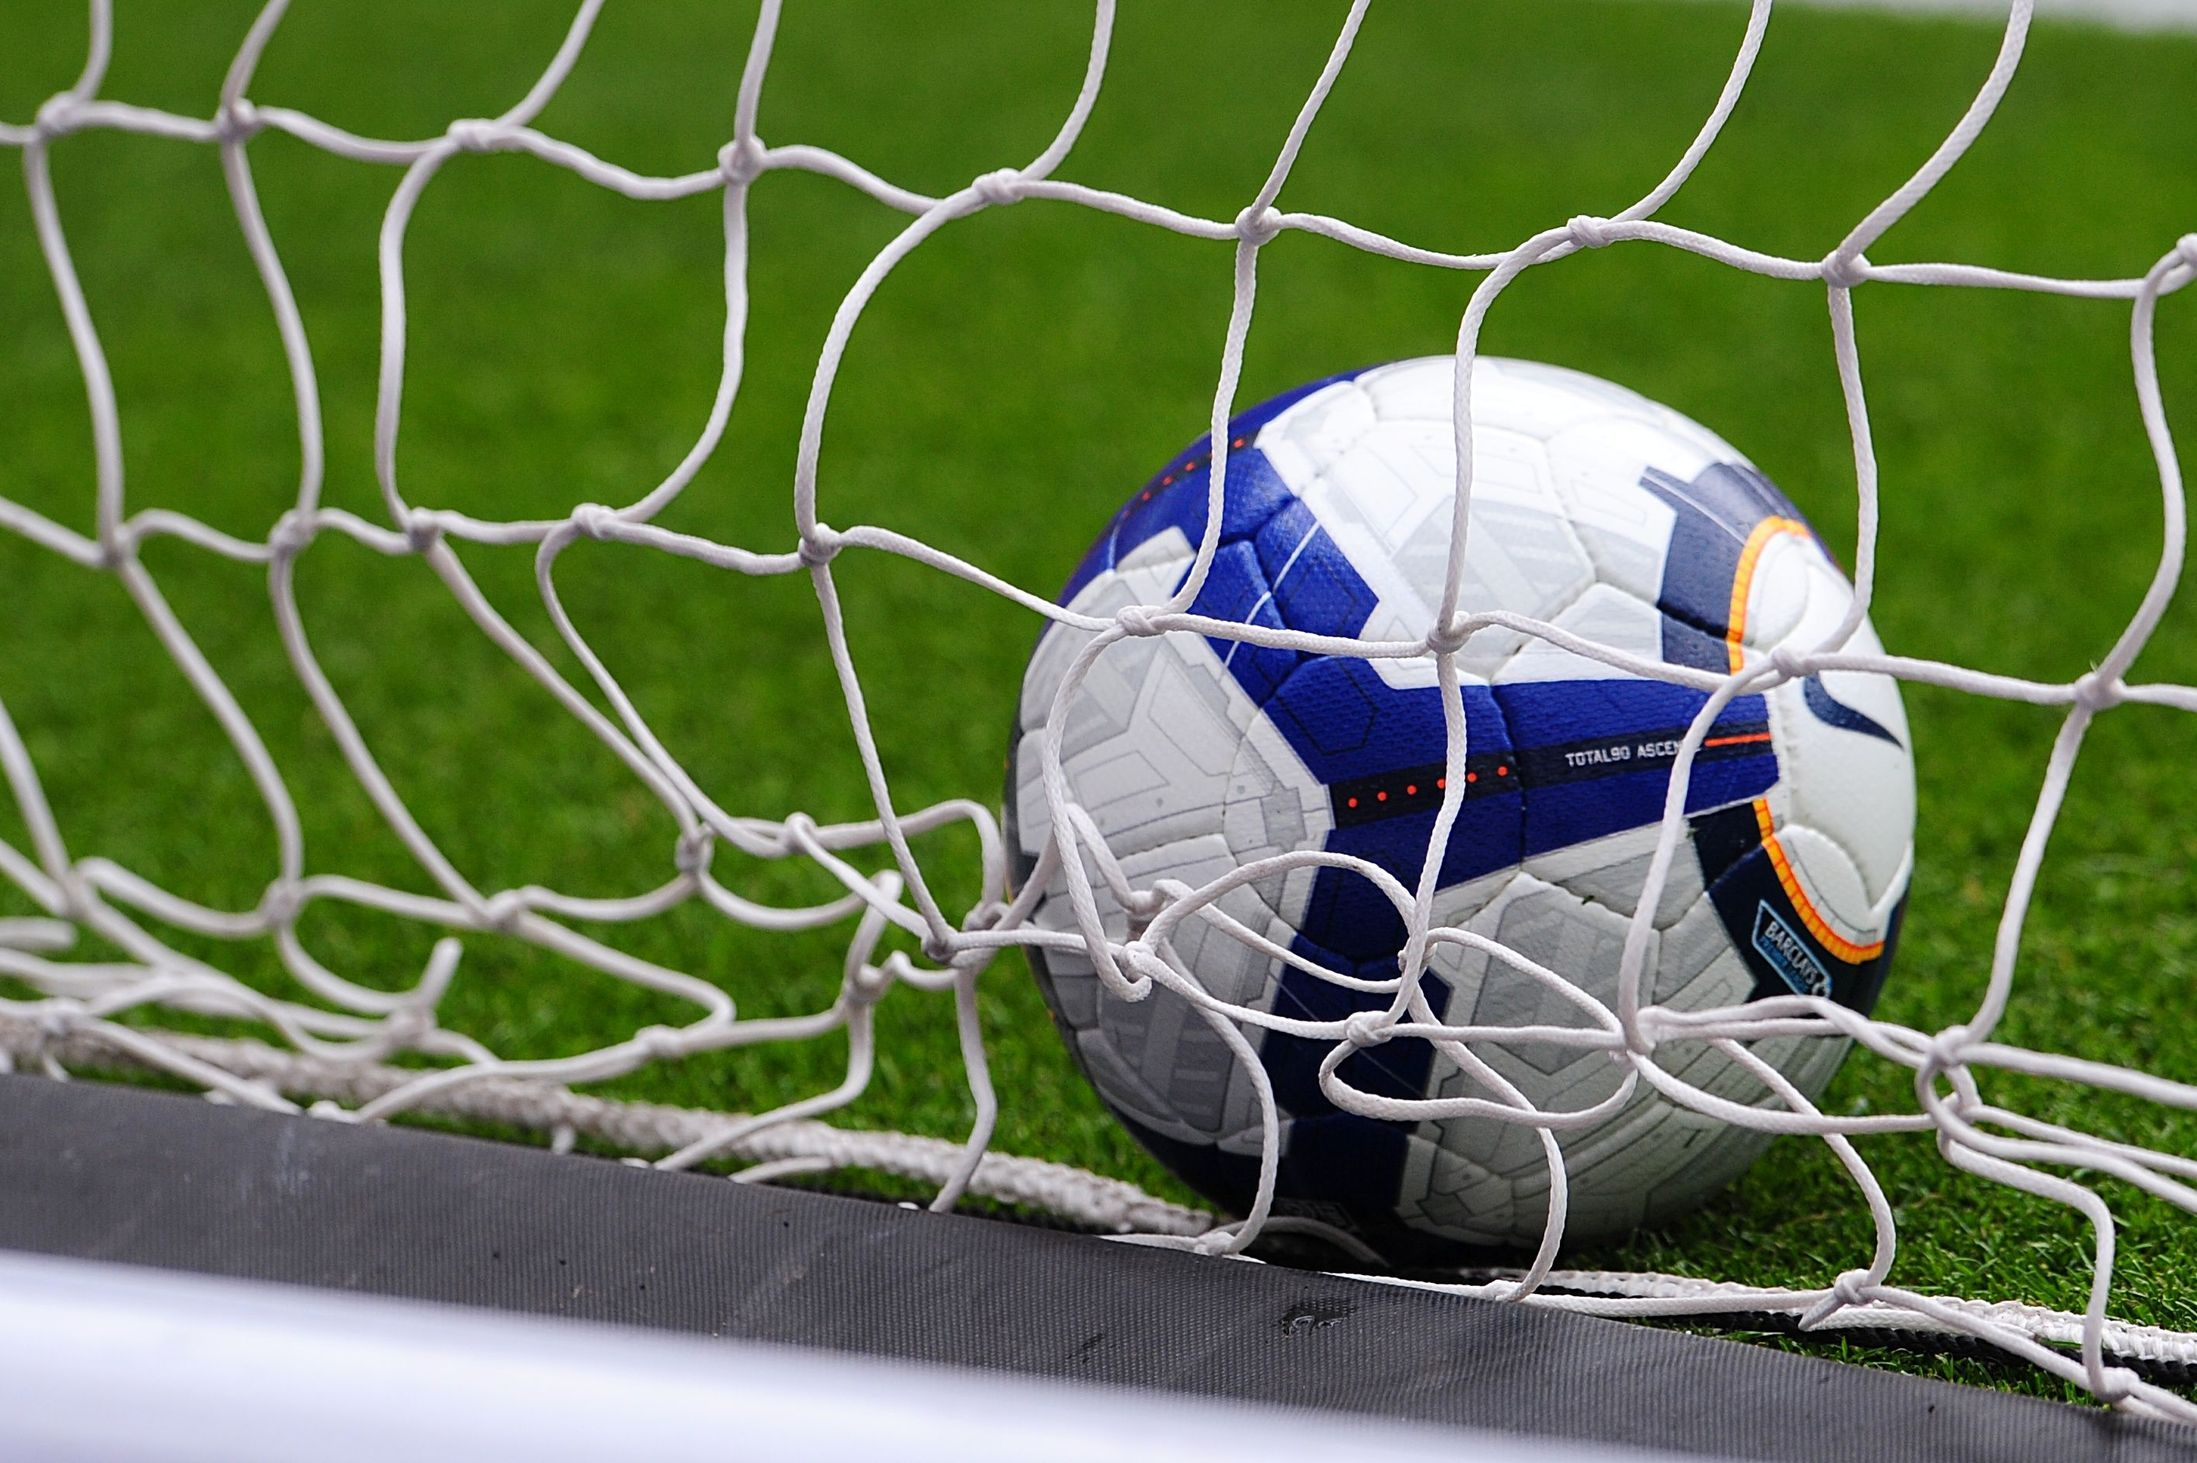 Yorkshire Amateur League round-up